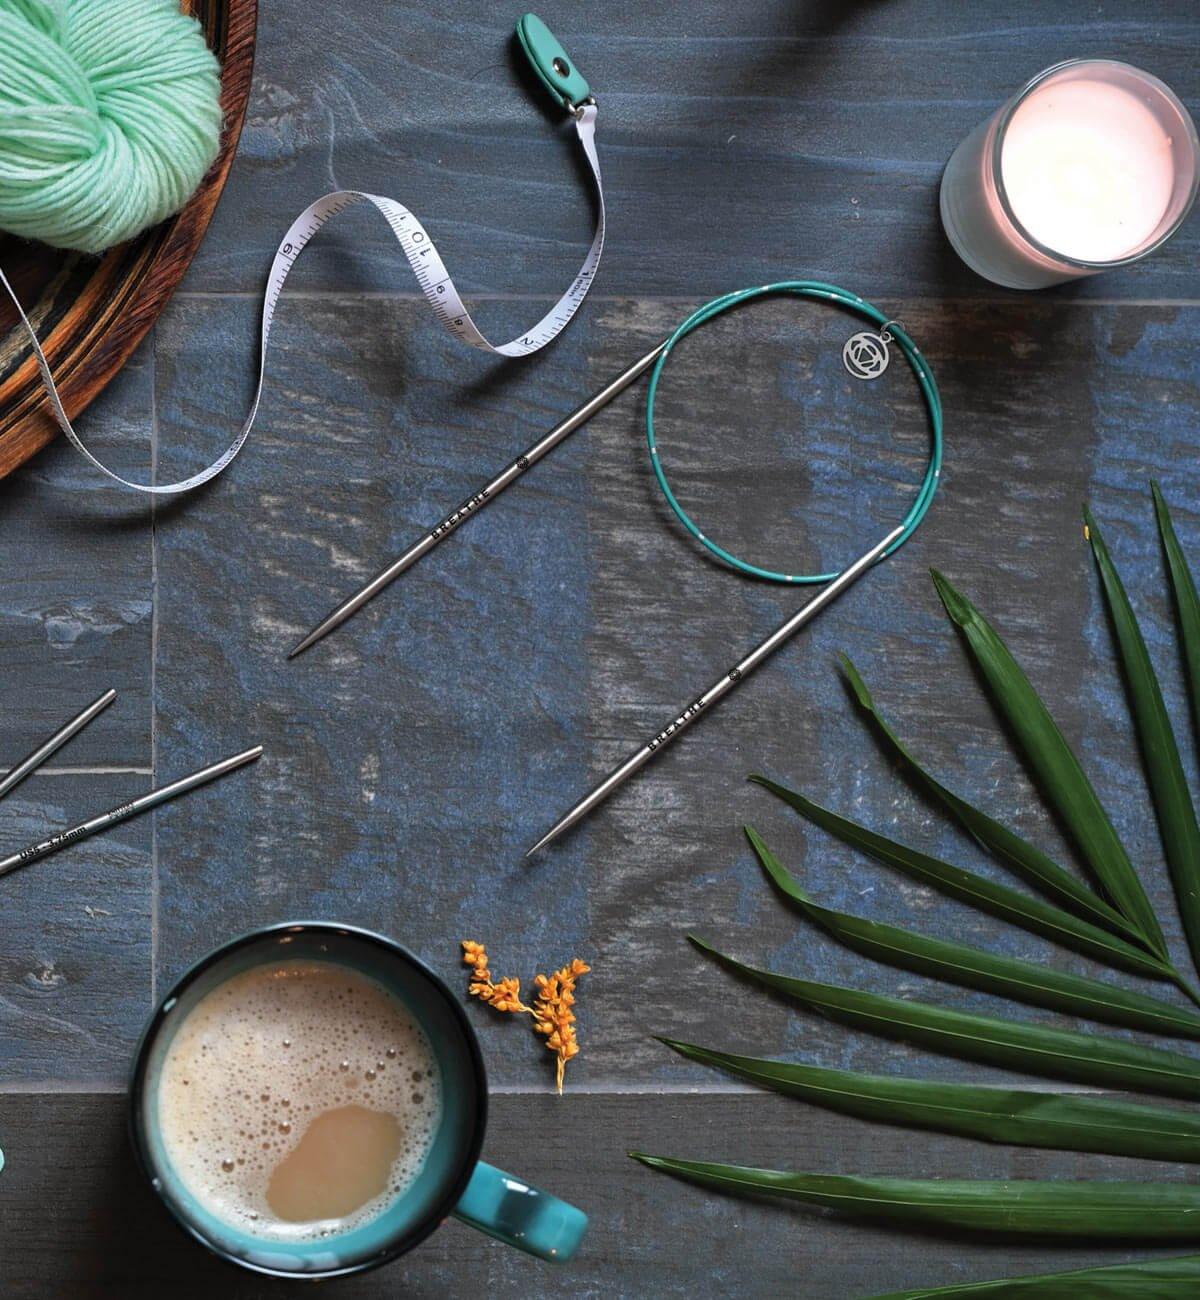 Mindful - 24 Lace Fixed Circular Needles